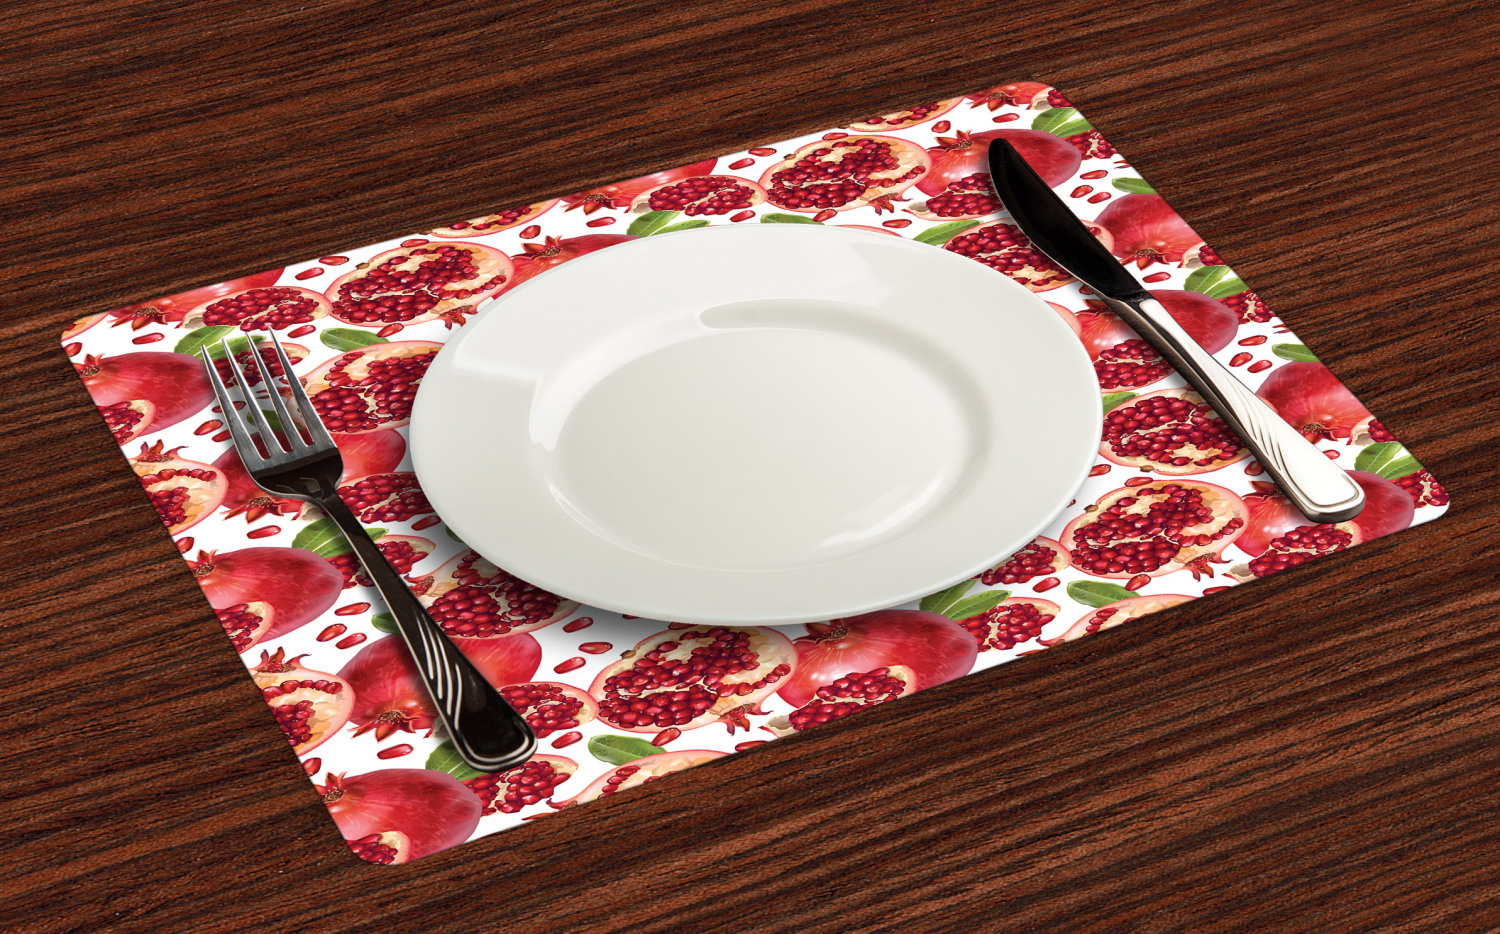 Ambesonne-Fabric-Place-Mats-Set-of-4-Placemats-for-Dining-Room-and-Kitchen-Table thumbnail 73